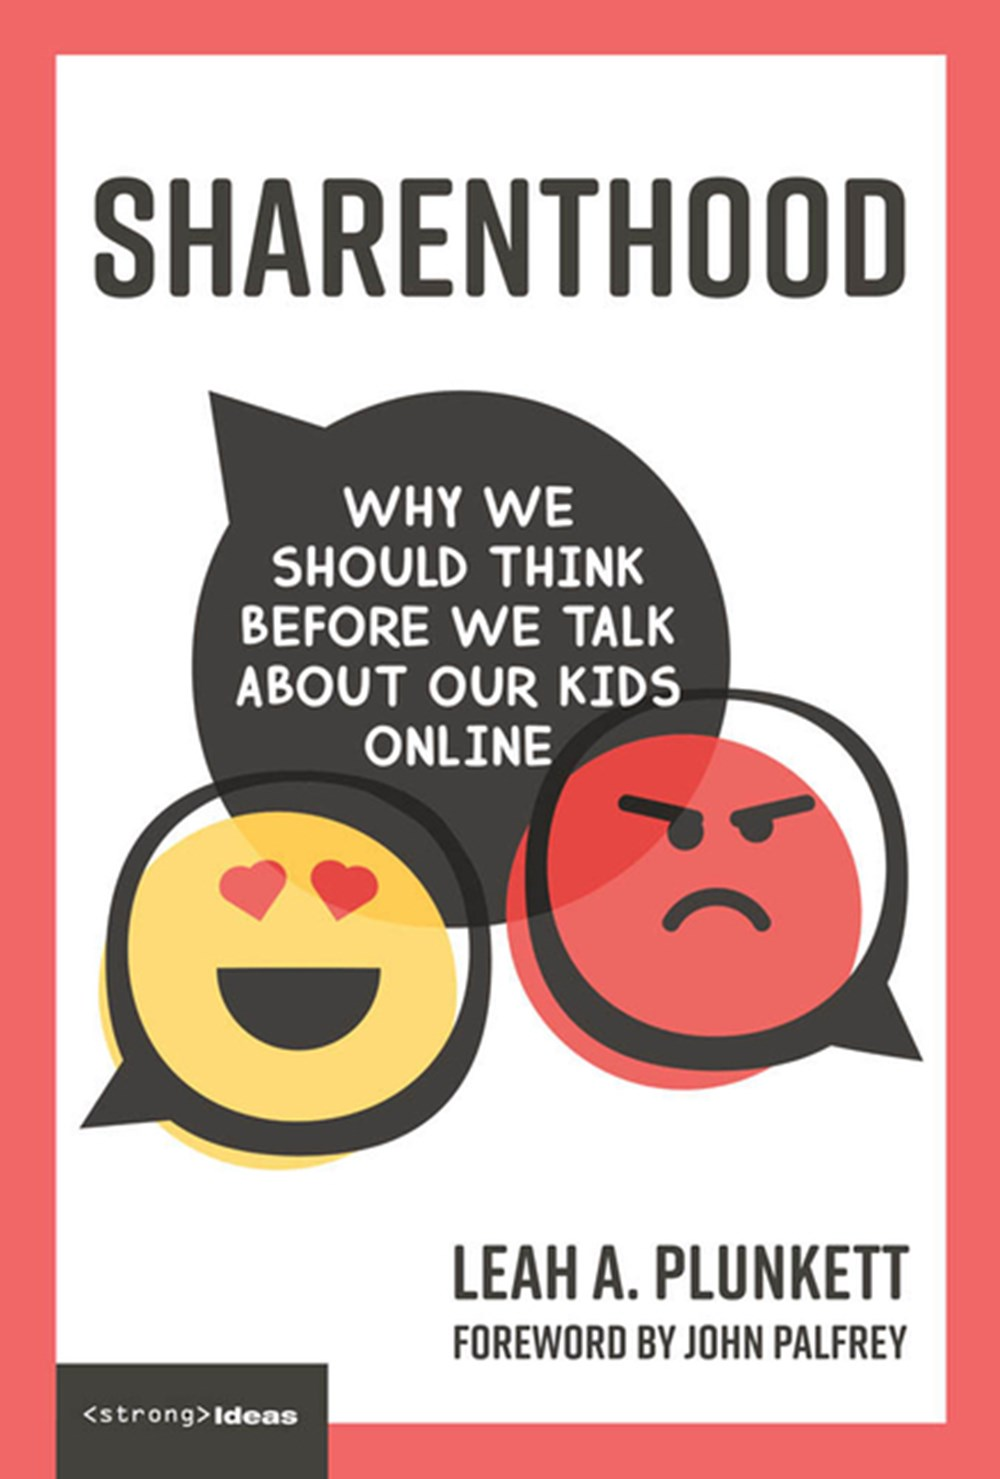 Sharenthood Why We Should Think Before We Talk about Our Kids Online